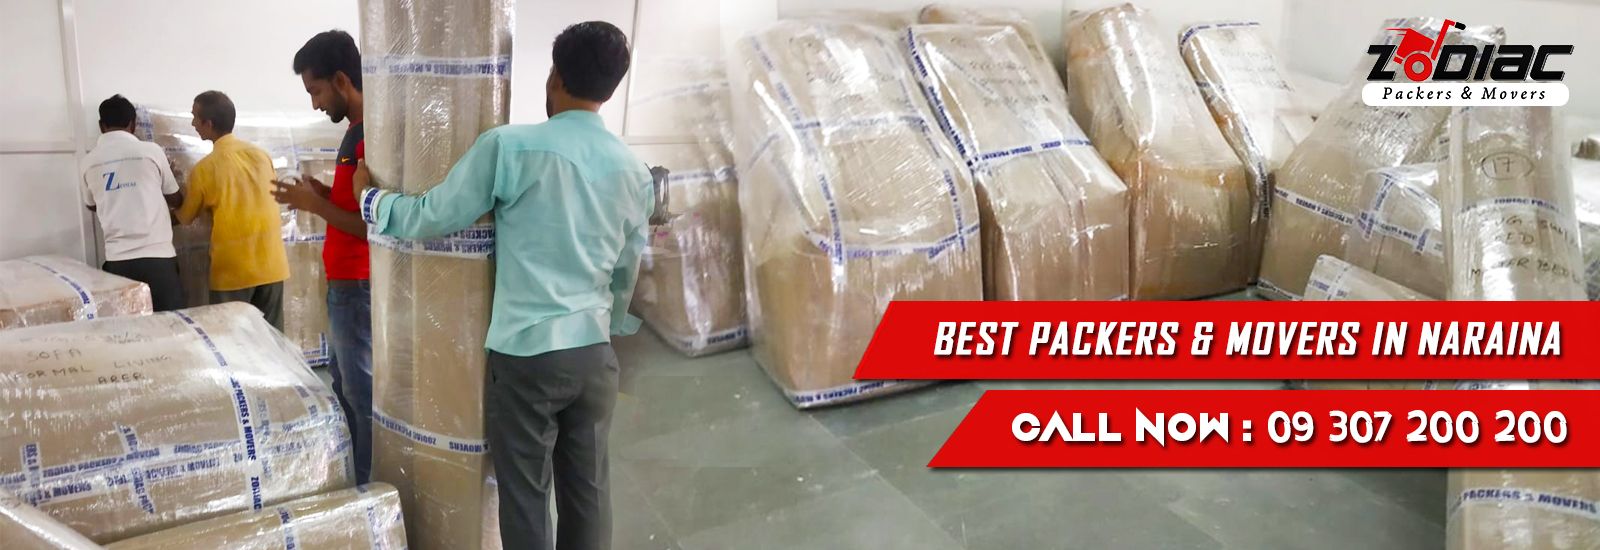 Packers and Movers in Naraina